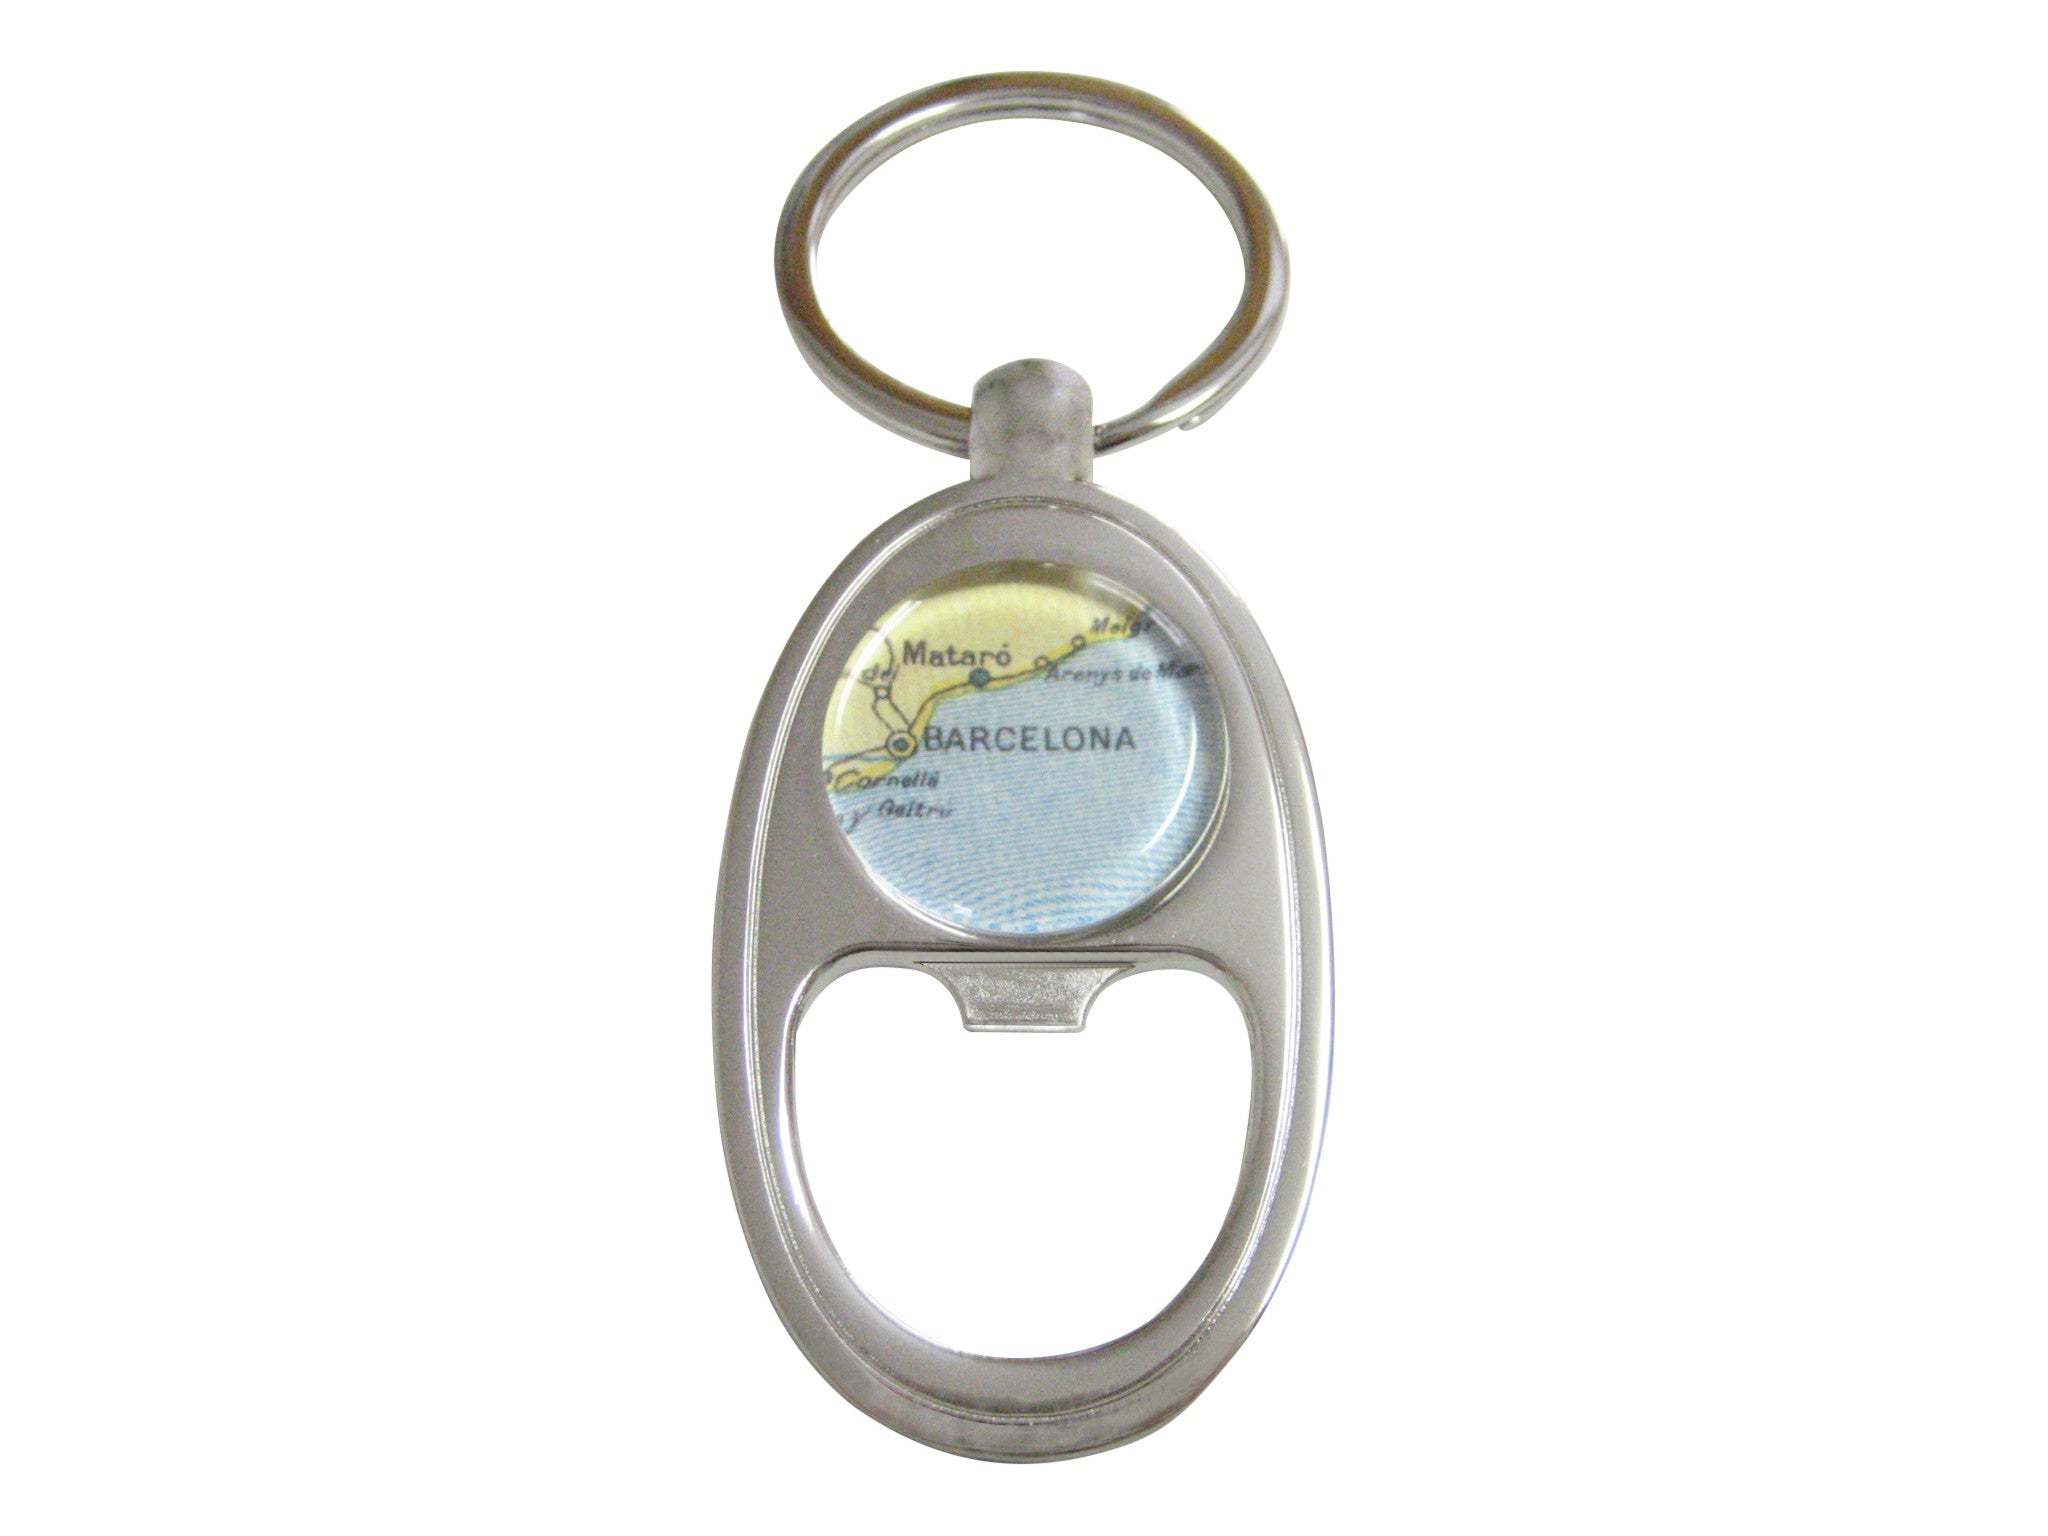 Barcelona Map Bottle Opener Key Chain